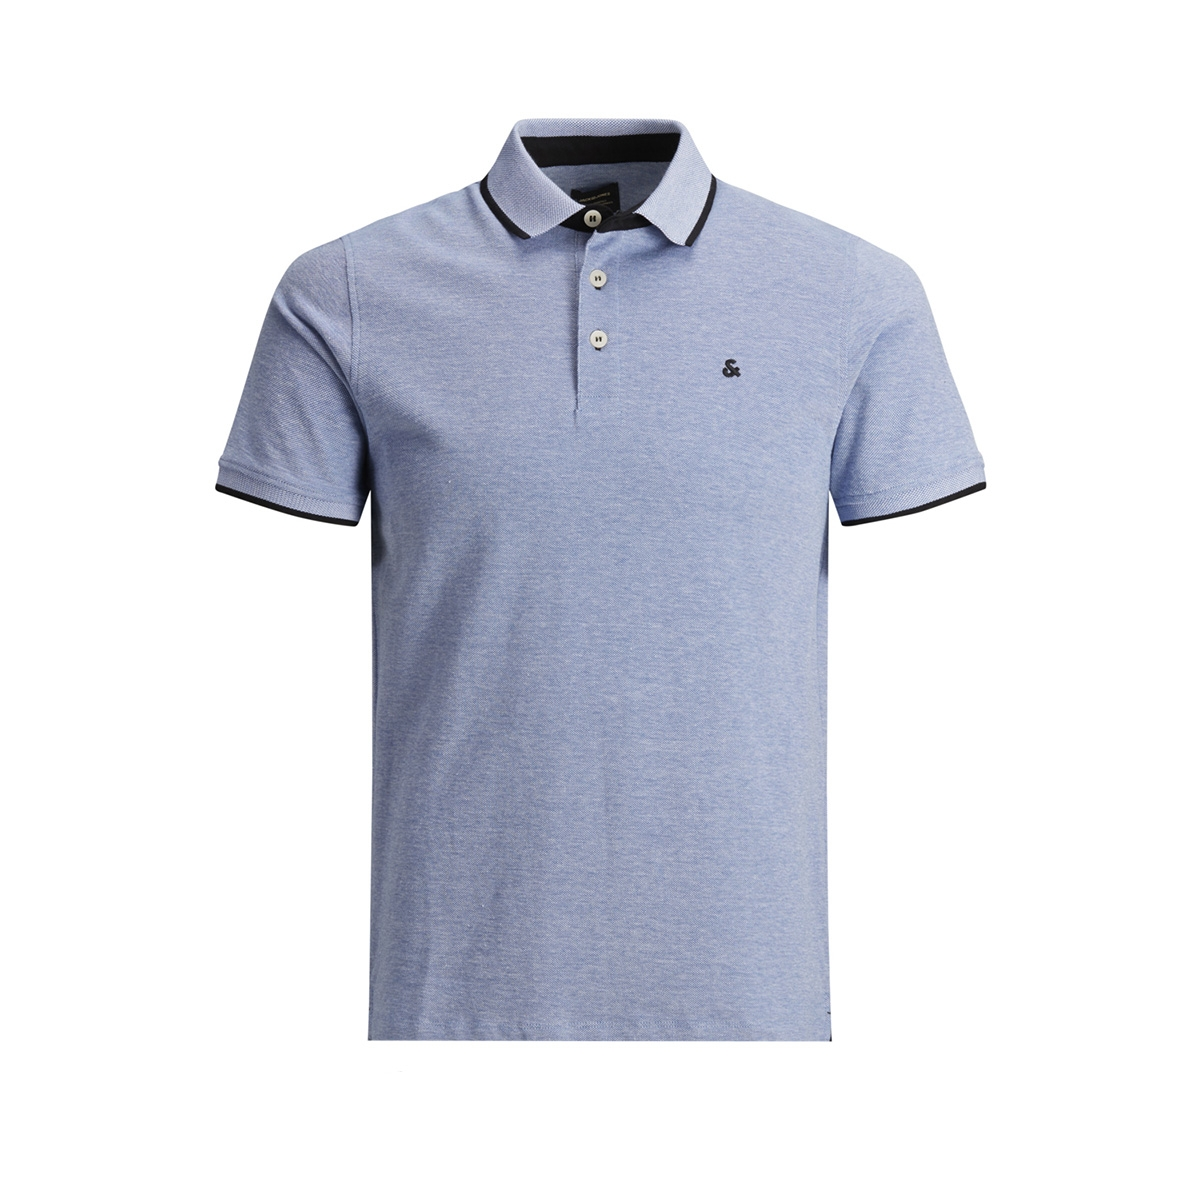 jjepaulos polo ss noos 12136668 jack & jones polo bright cobalt/slim fit